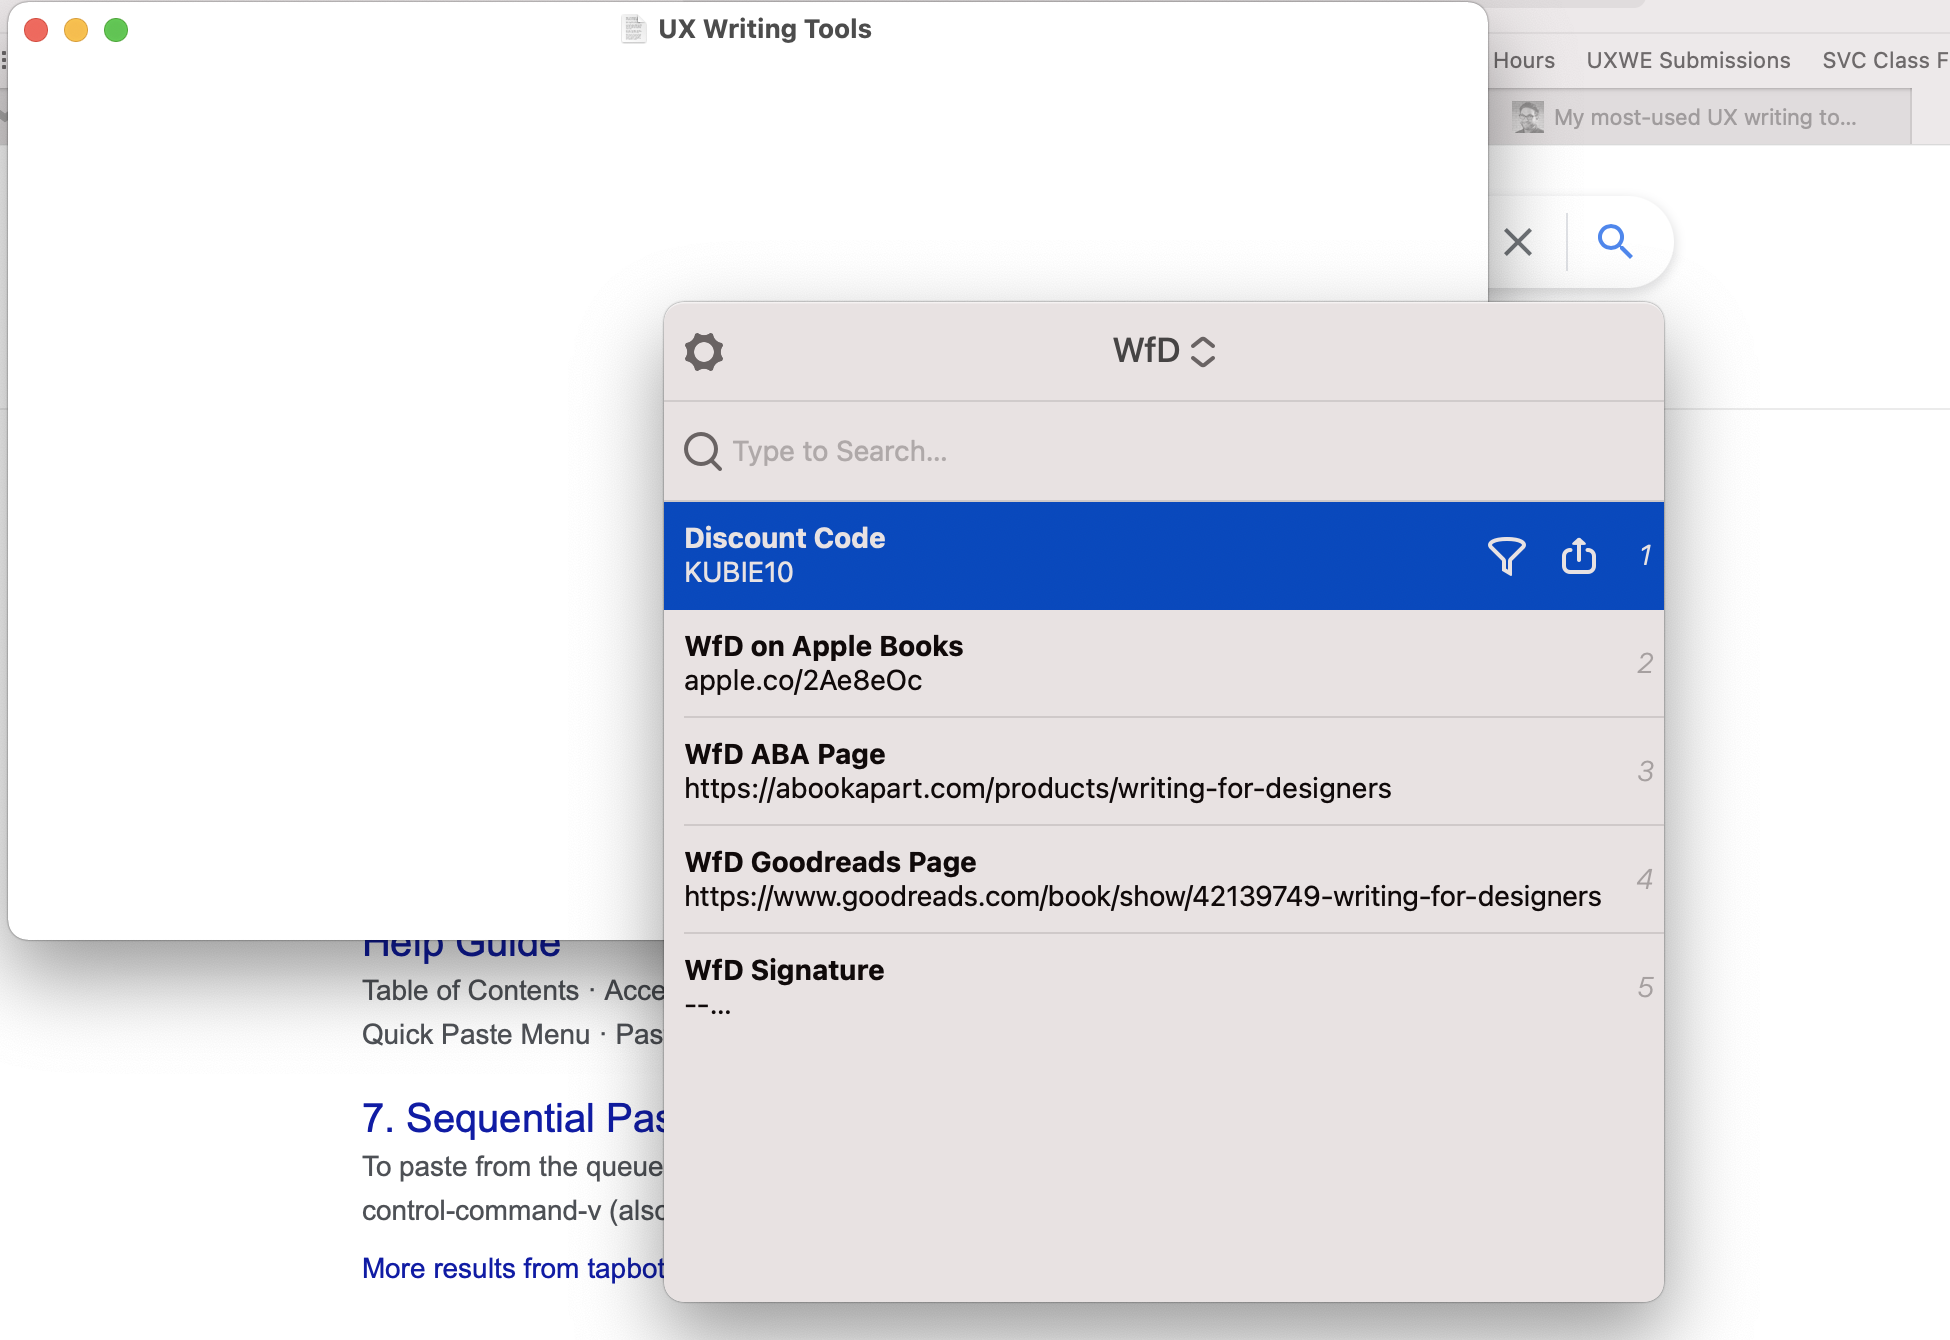 Screenshot of a clipboard manager window with several links related to my book to choose from.